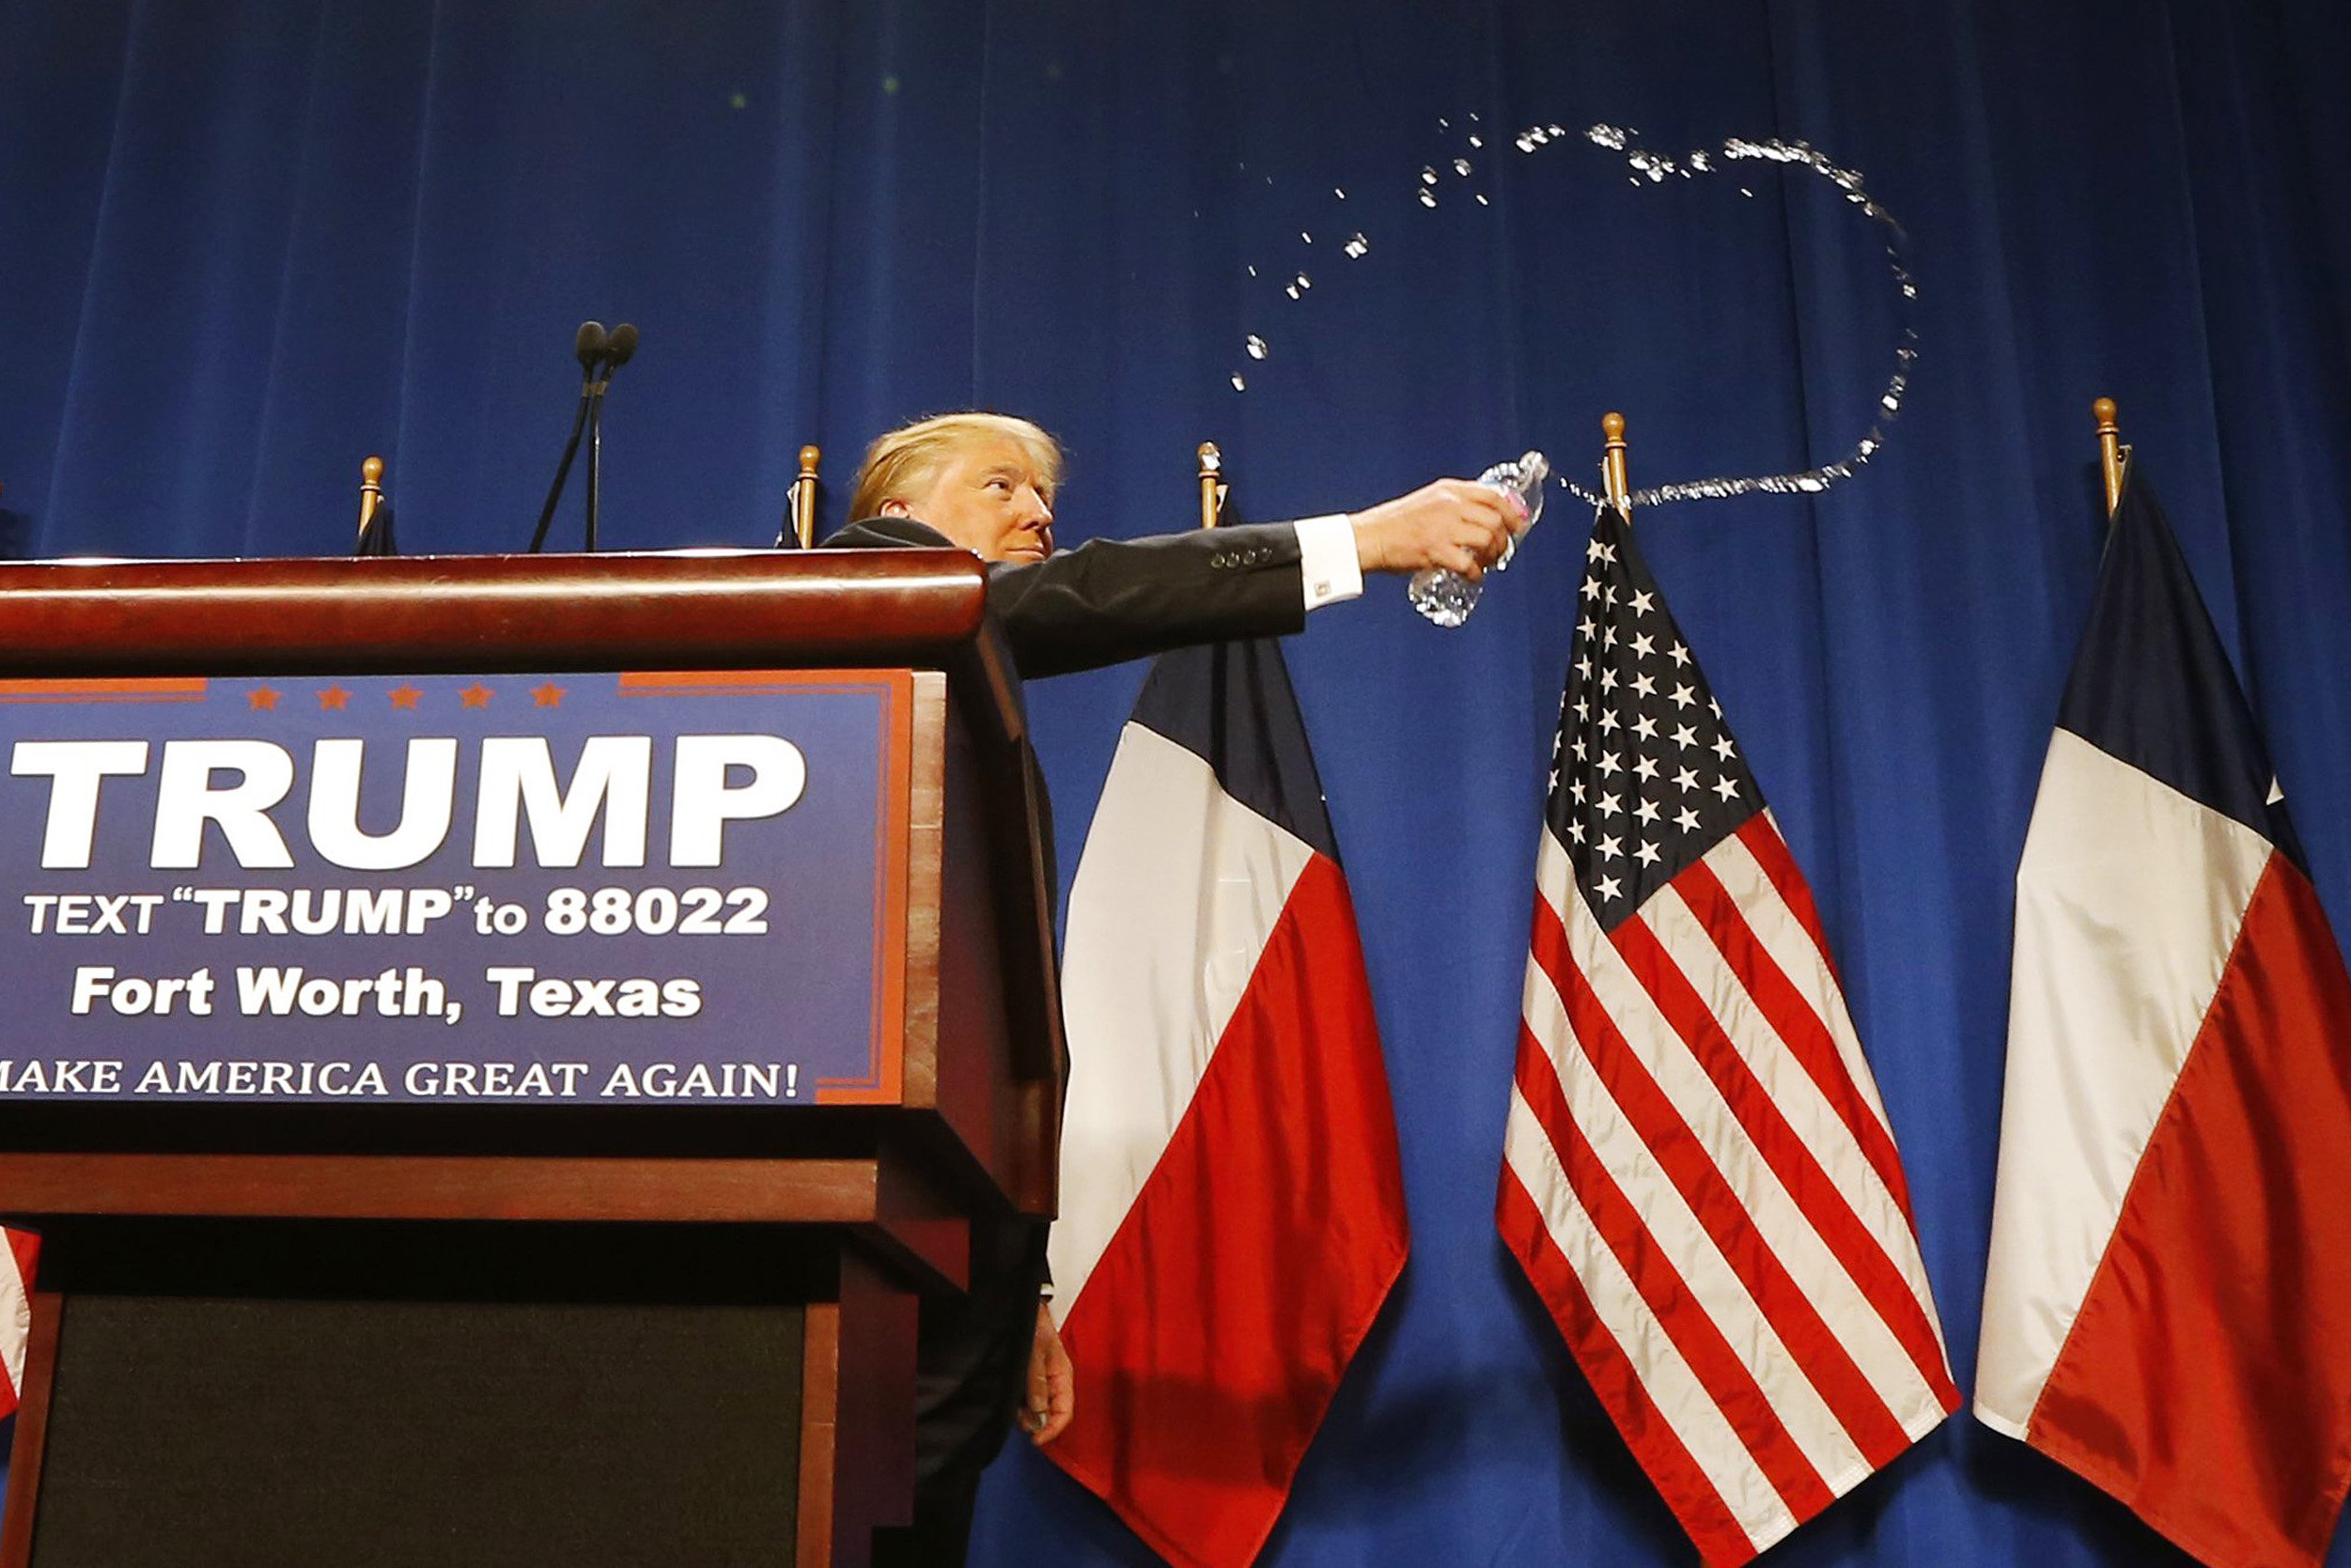 Republican presidential candidate Donald Trump slings water from a bottle during a rally in Fort Worth, Texas on Feb. 26.